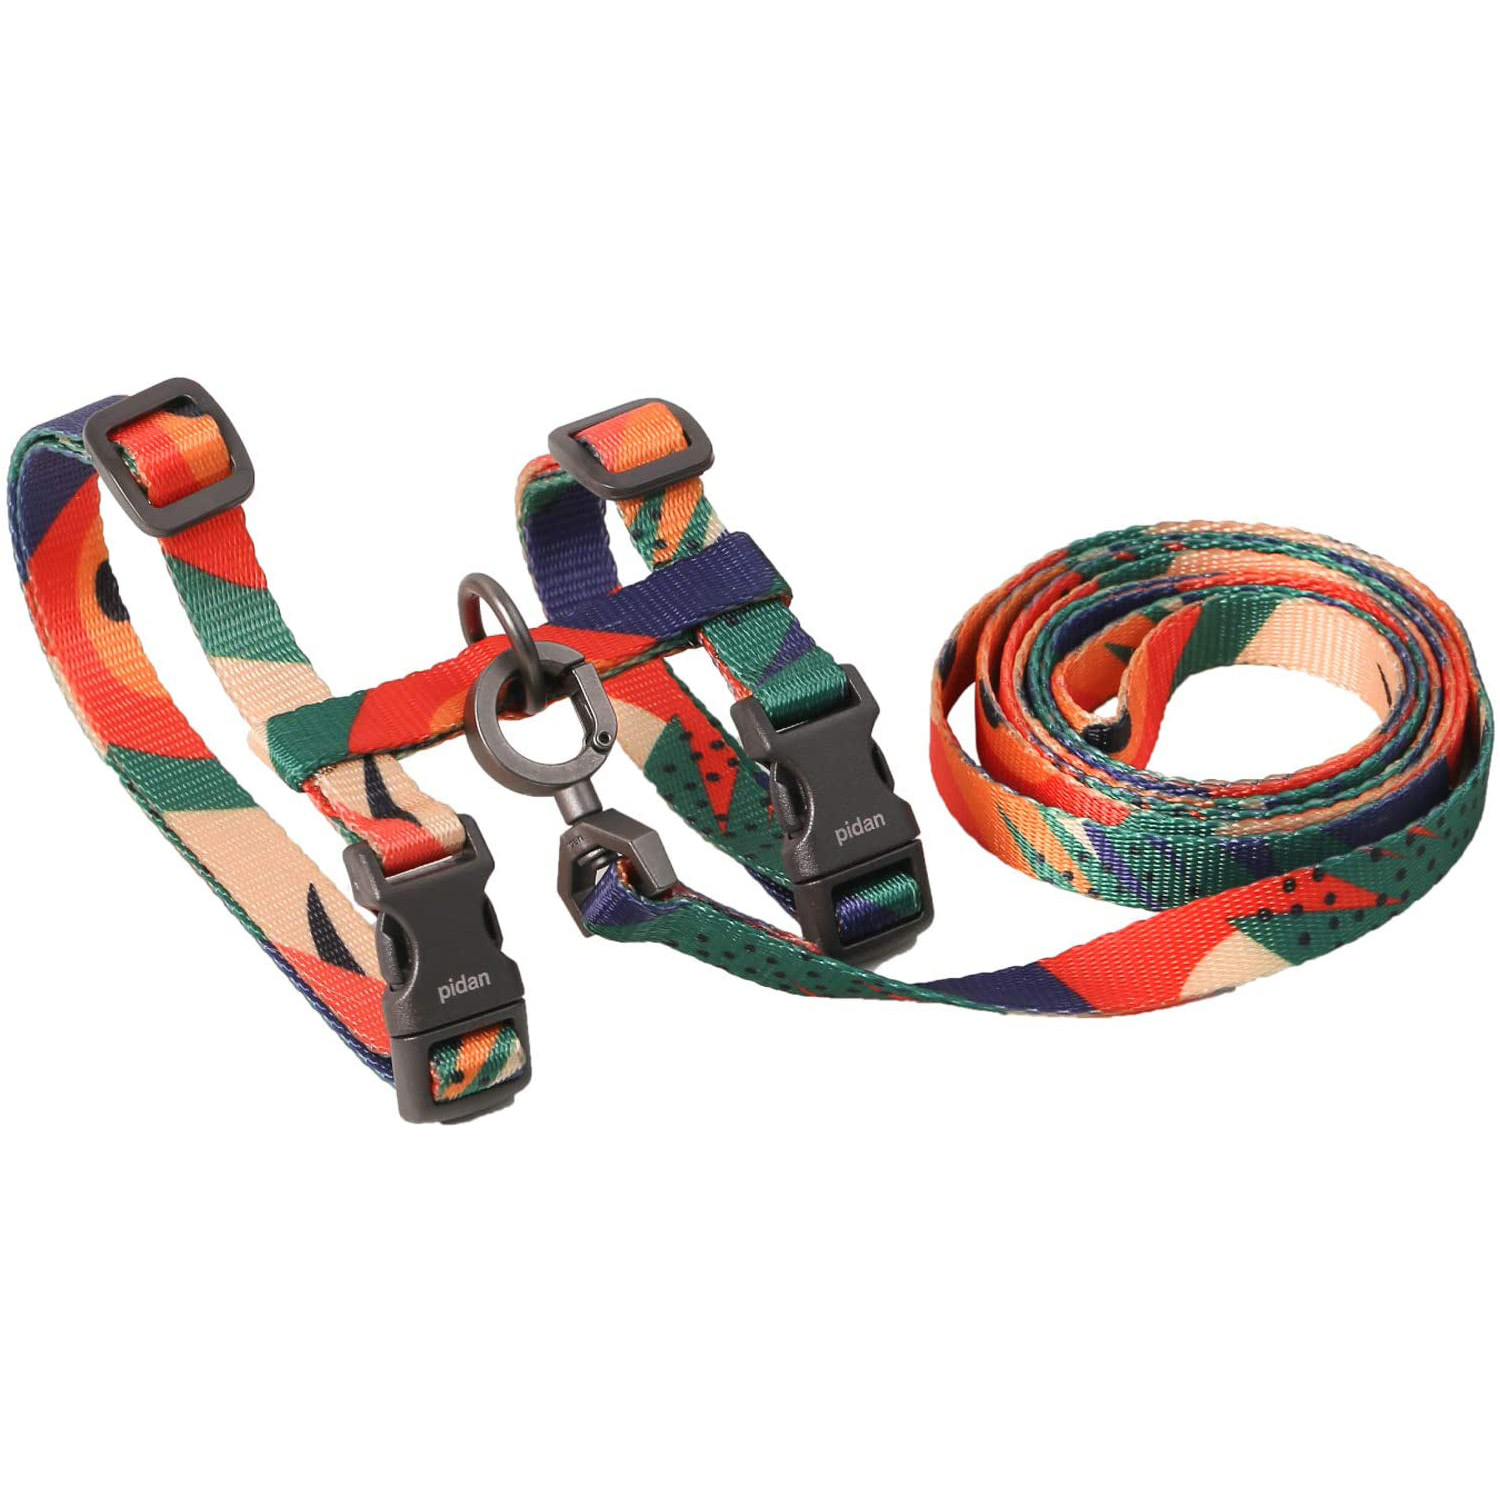 pidan-adjustable-cat-harness